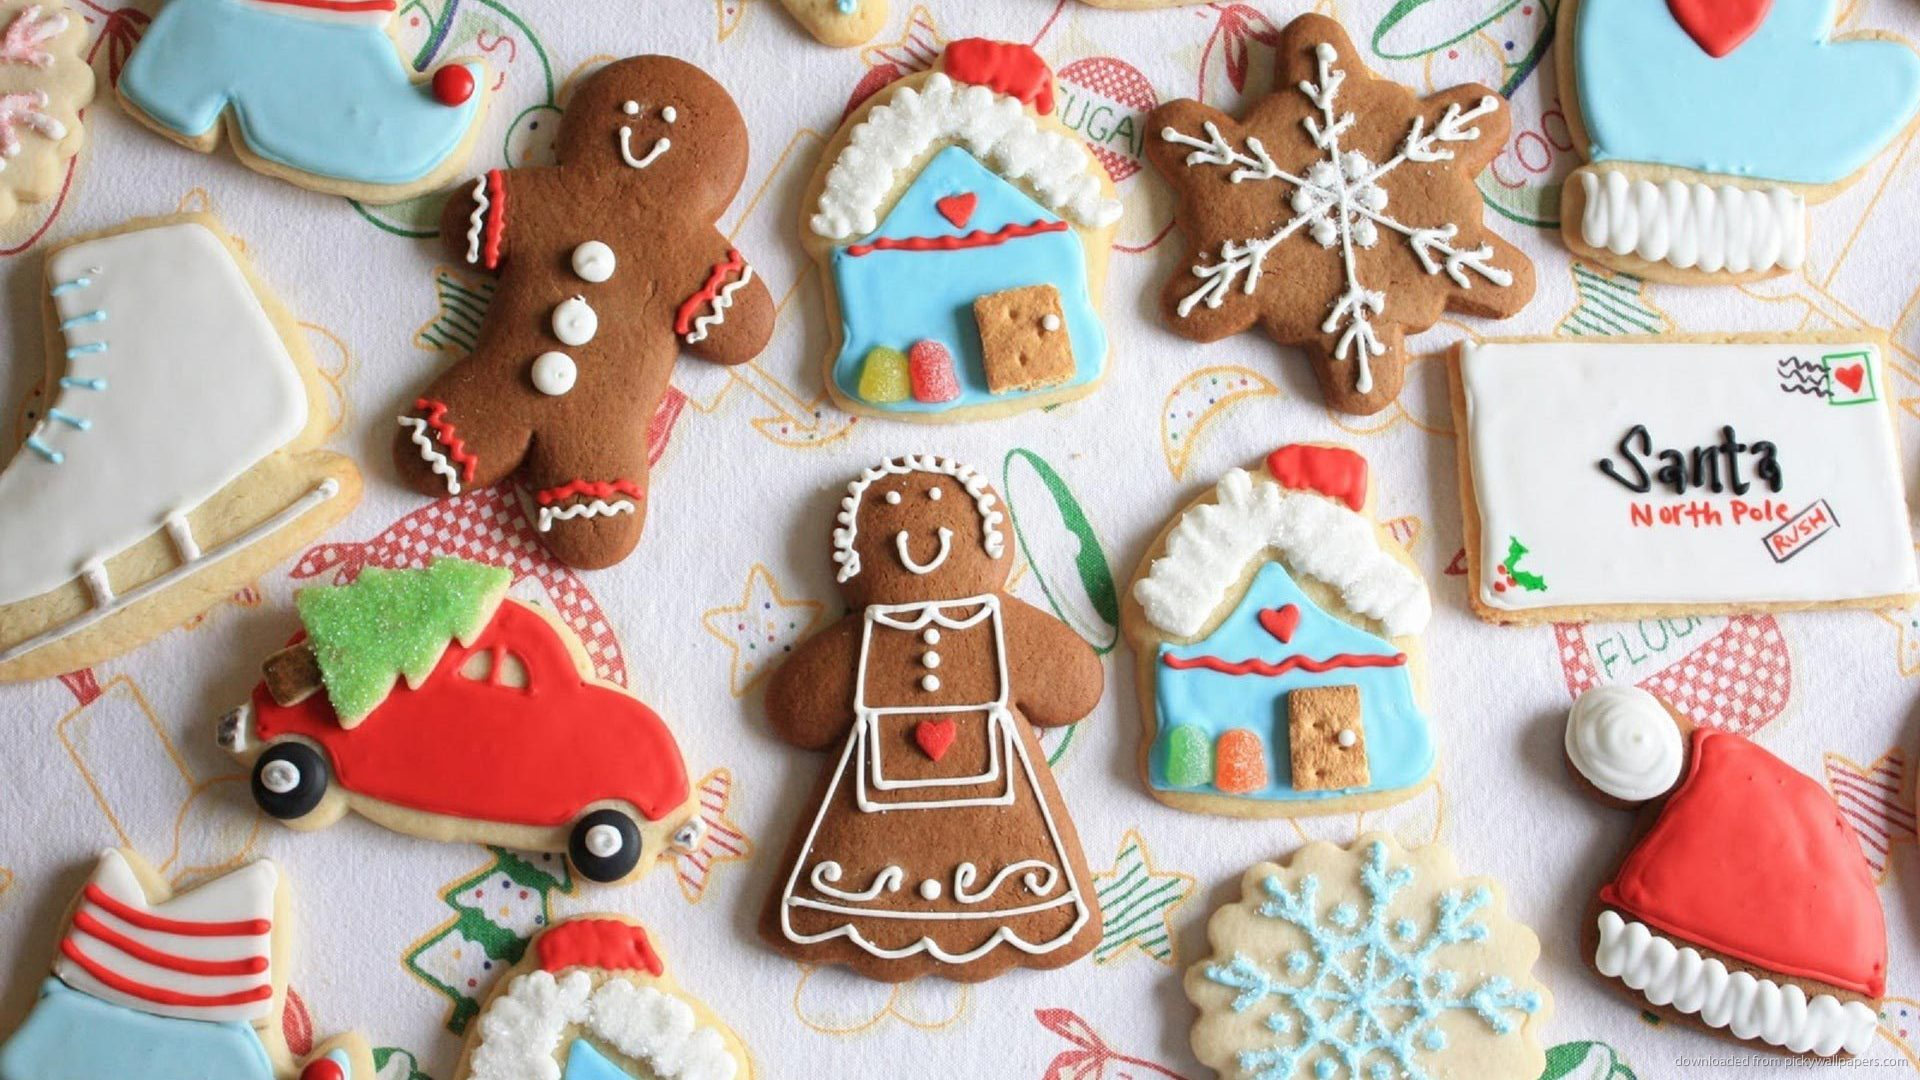 Cute Assorted Holiday Christmas Cookies Wallpaper Screensaver For 1920x1080